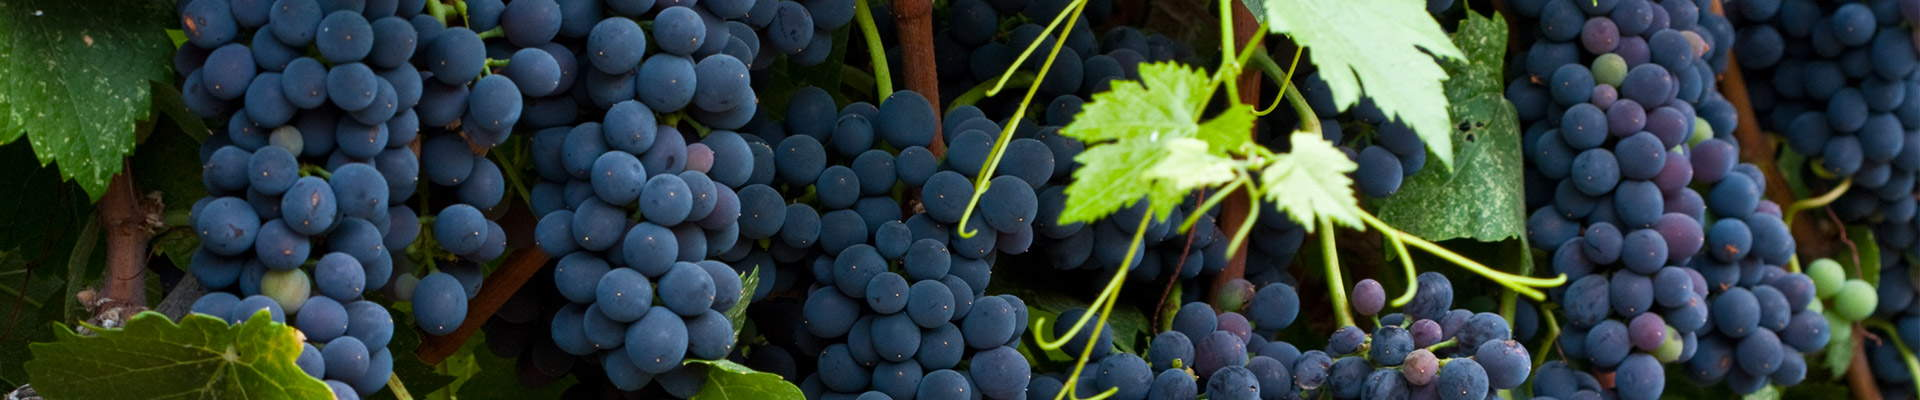 Wine grapes hanging